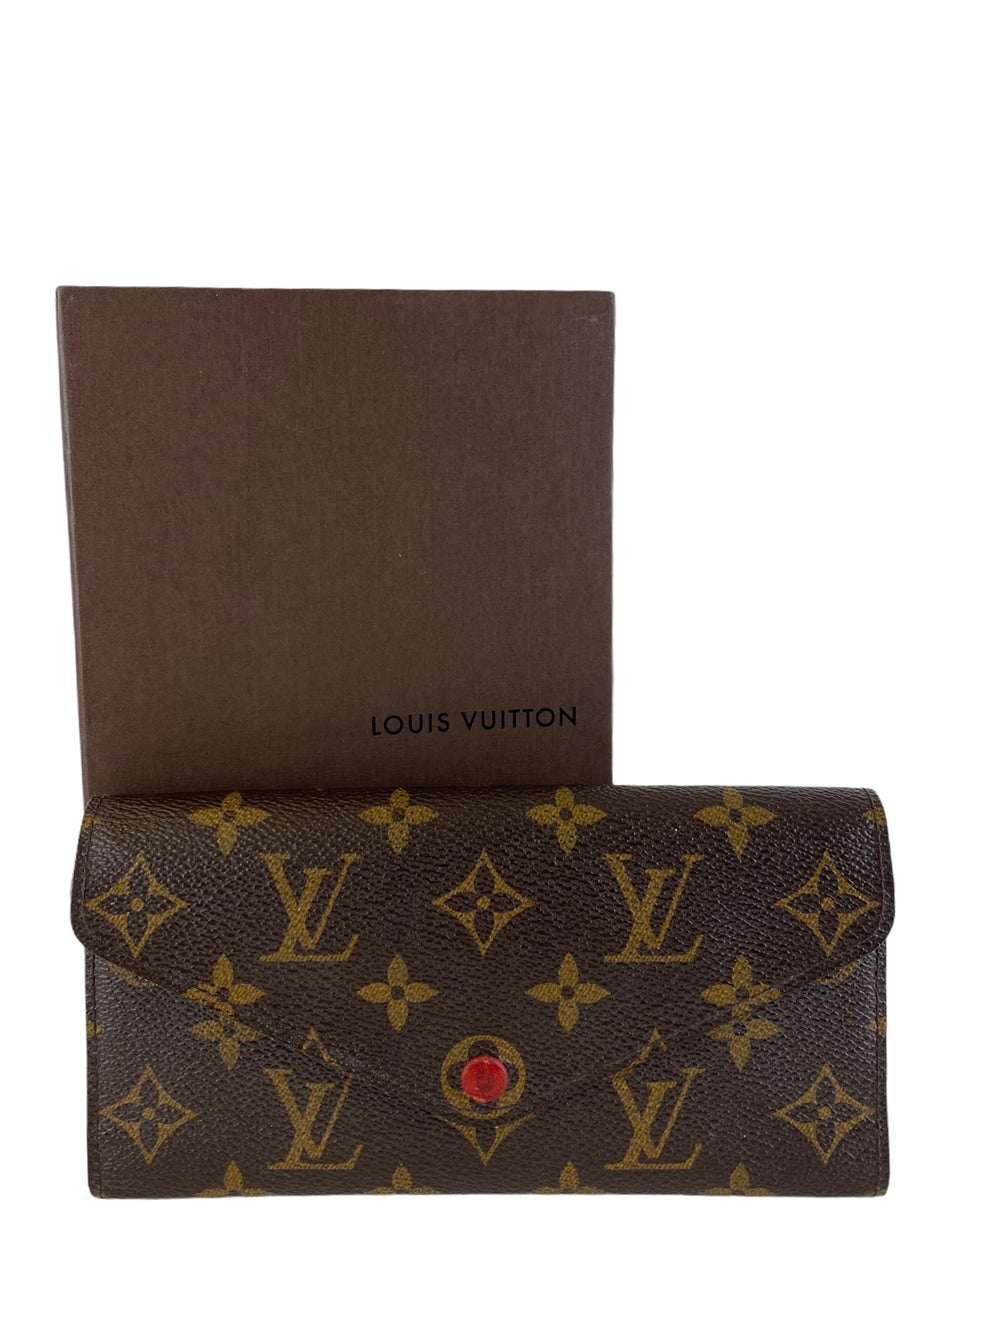 Louis Vuitton Monogram Wallet - As Seen on Instagram 14/10/2020